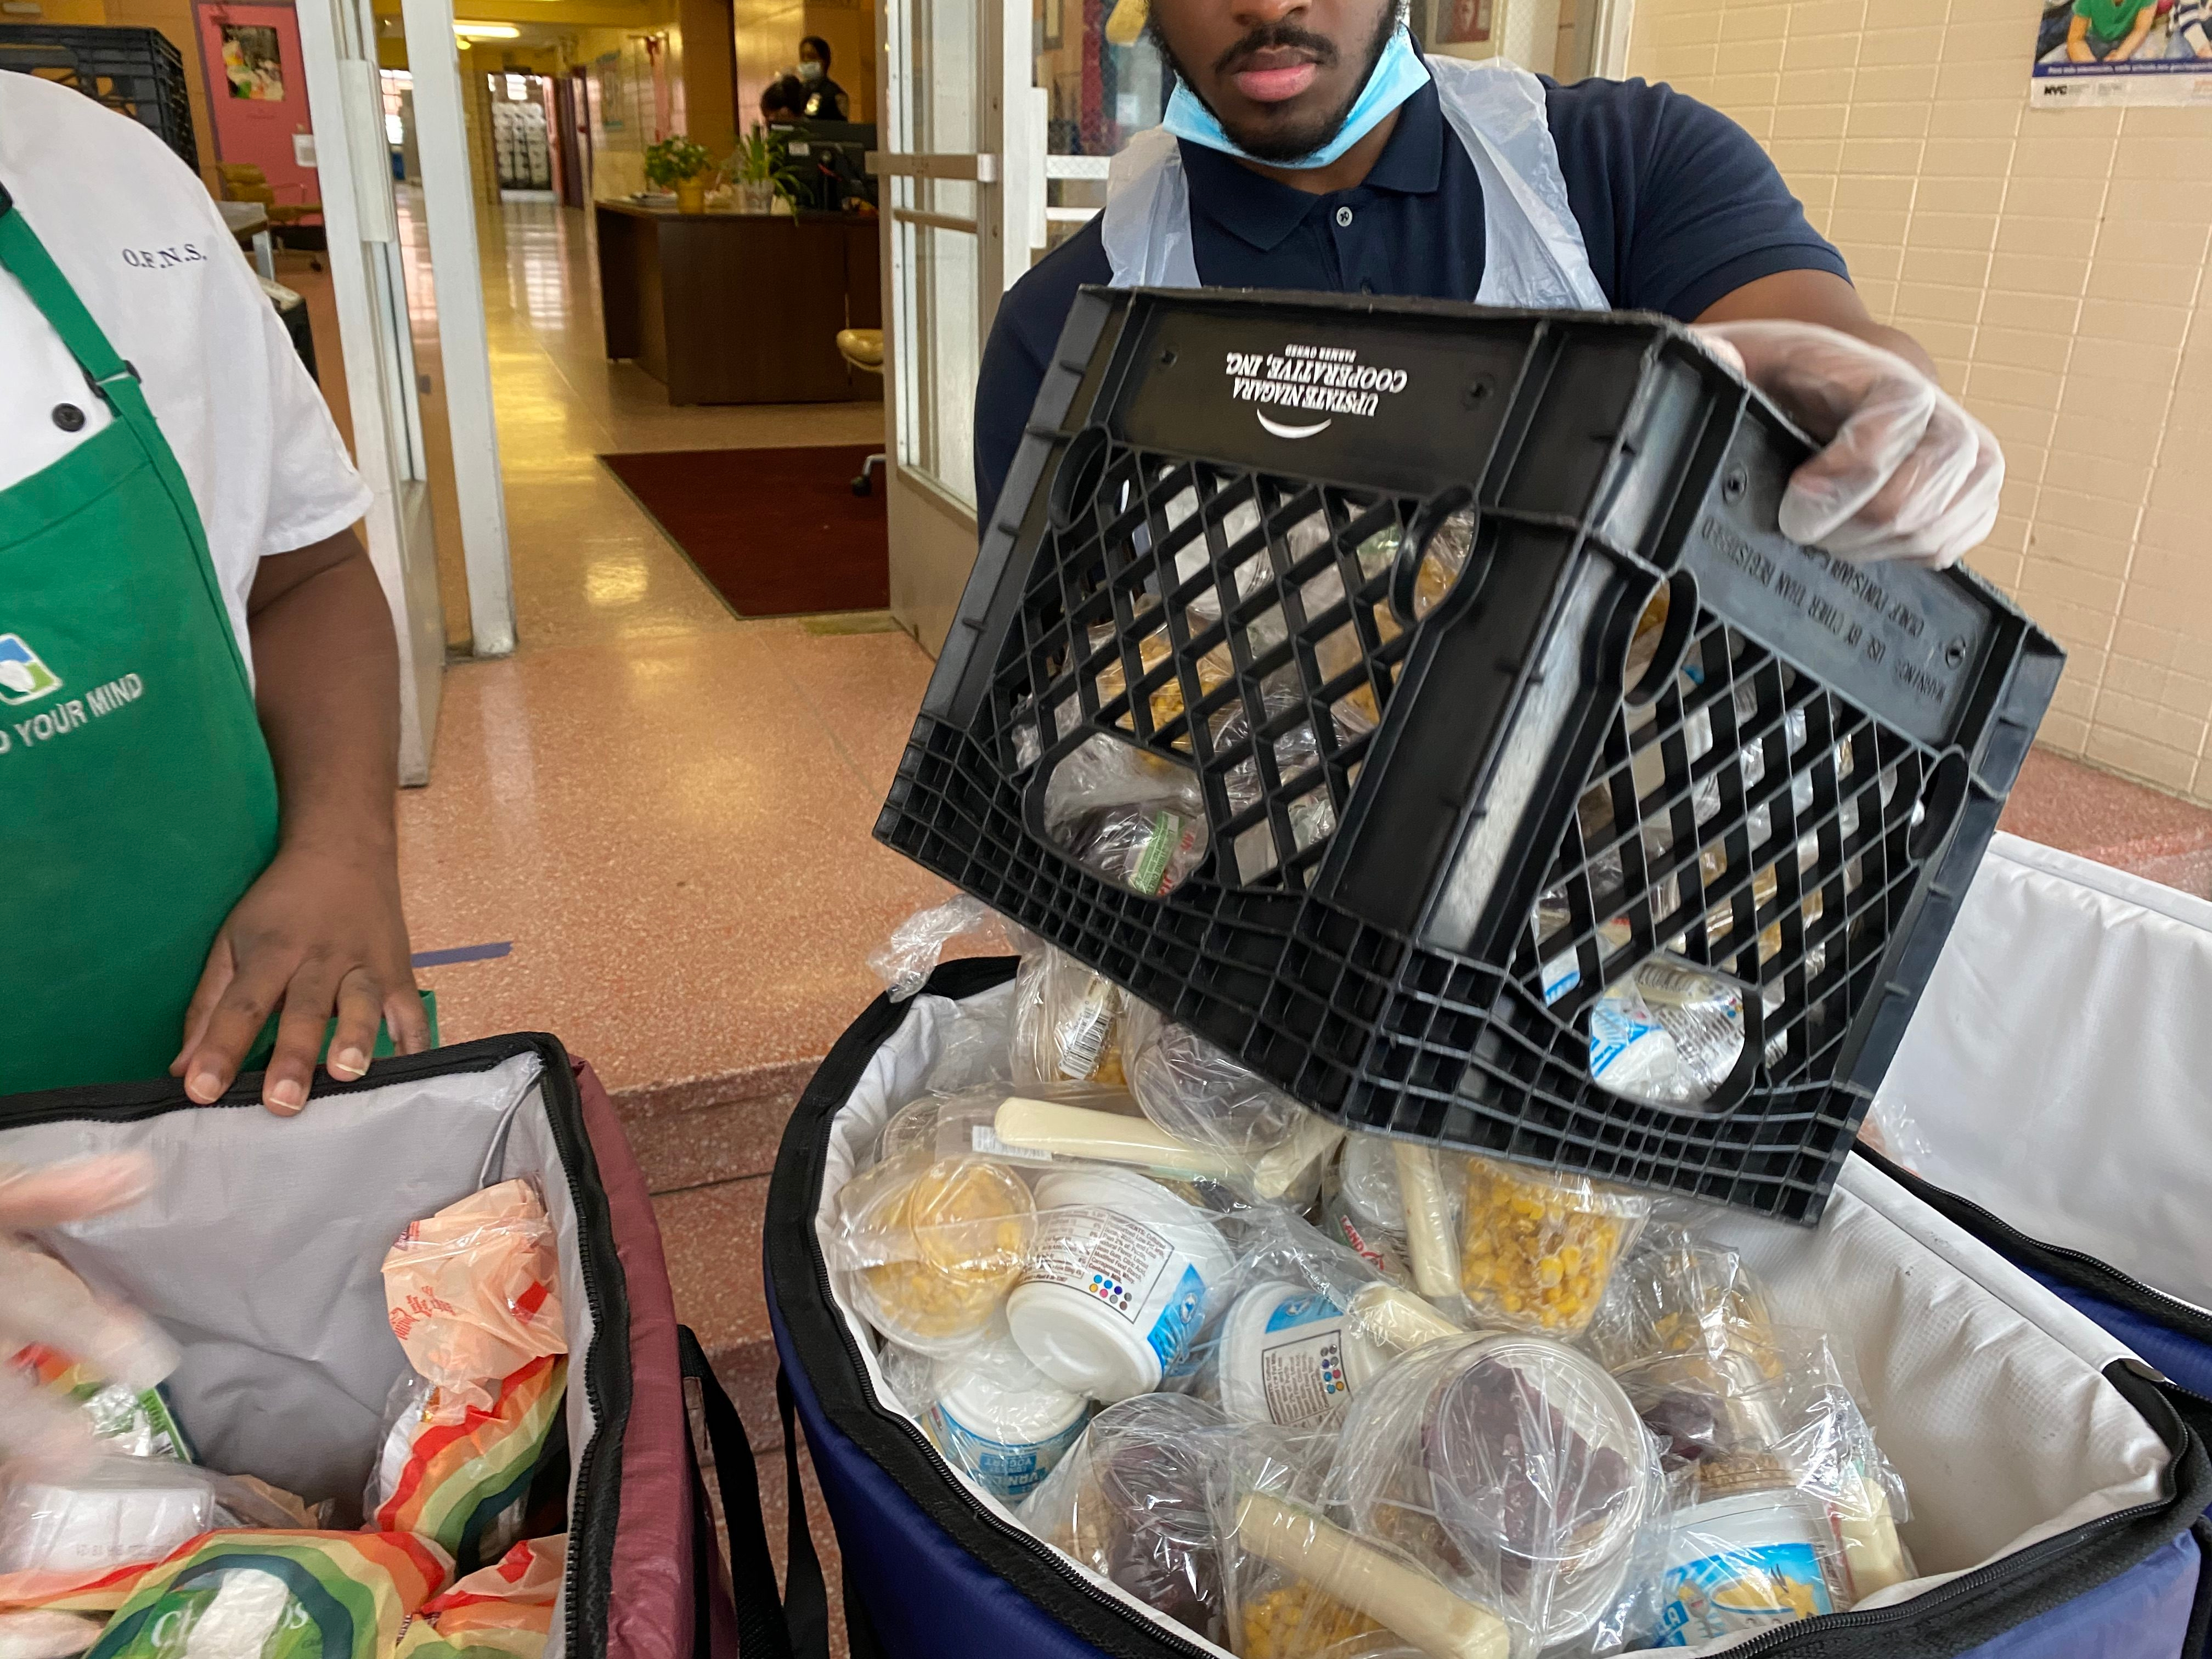 Kosher meals now available as part of New York Citys hunger relief efforts